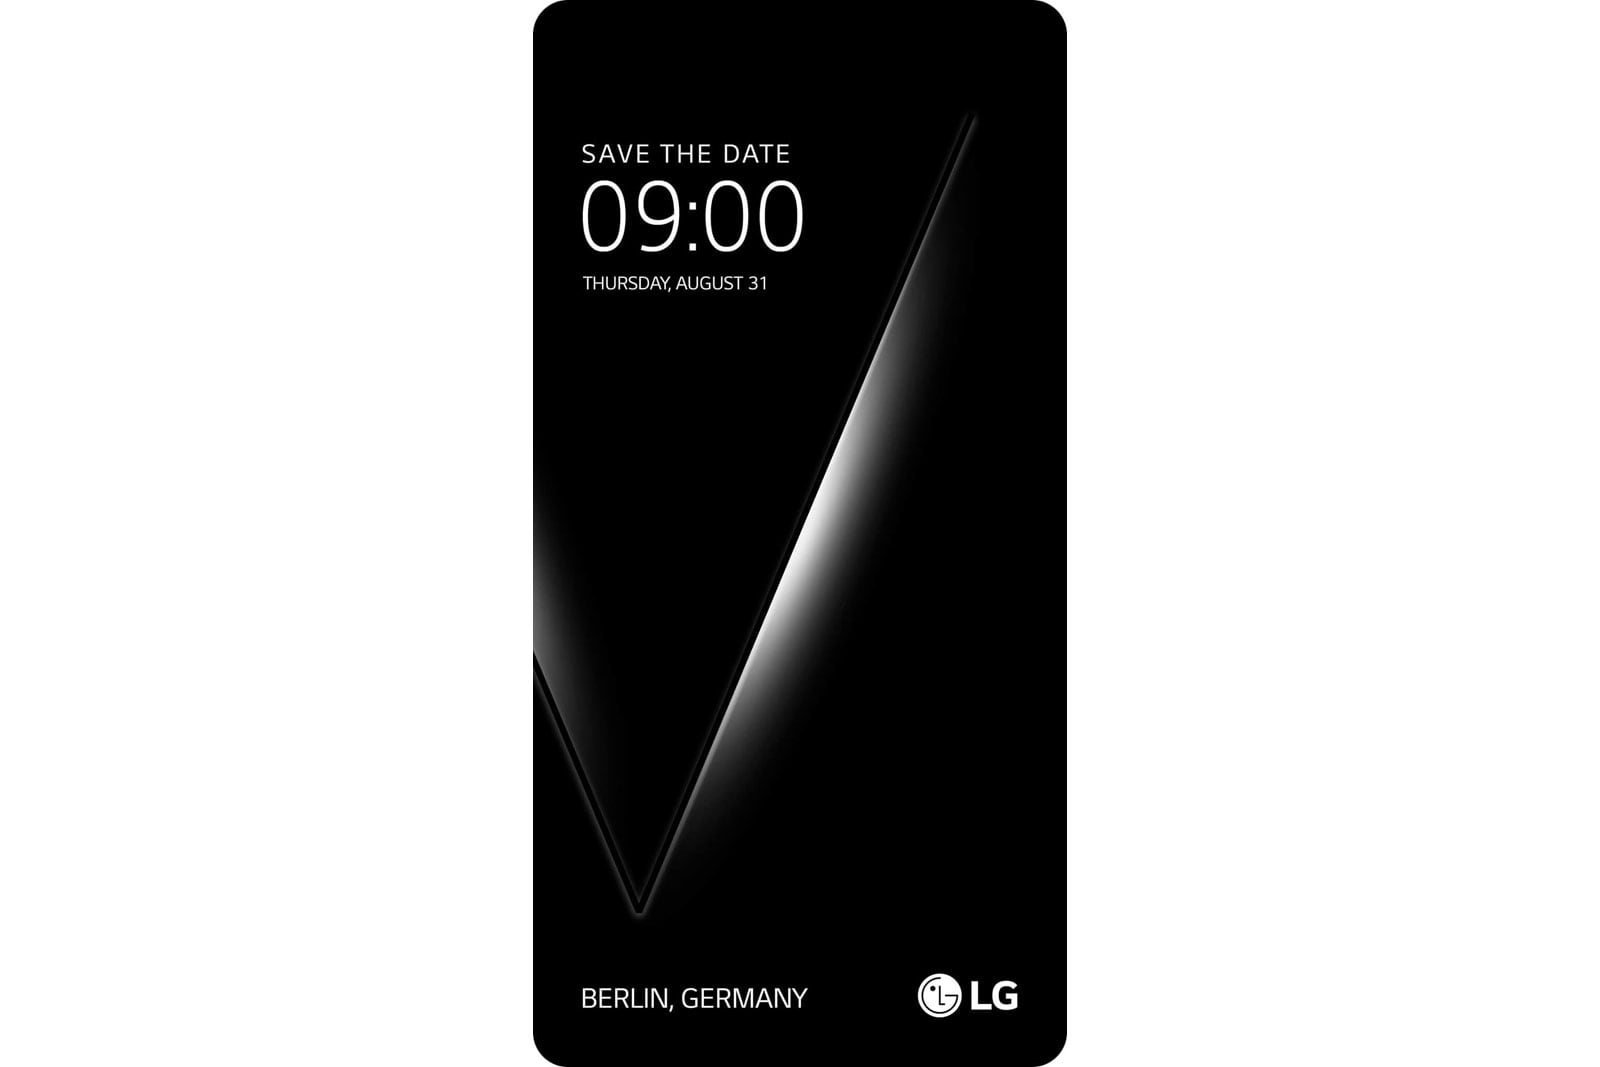 LG's V30 will unlock when it recognizes your face or voice